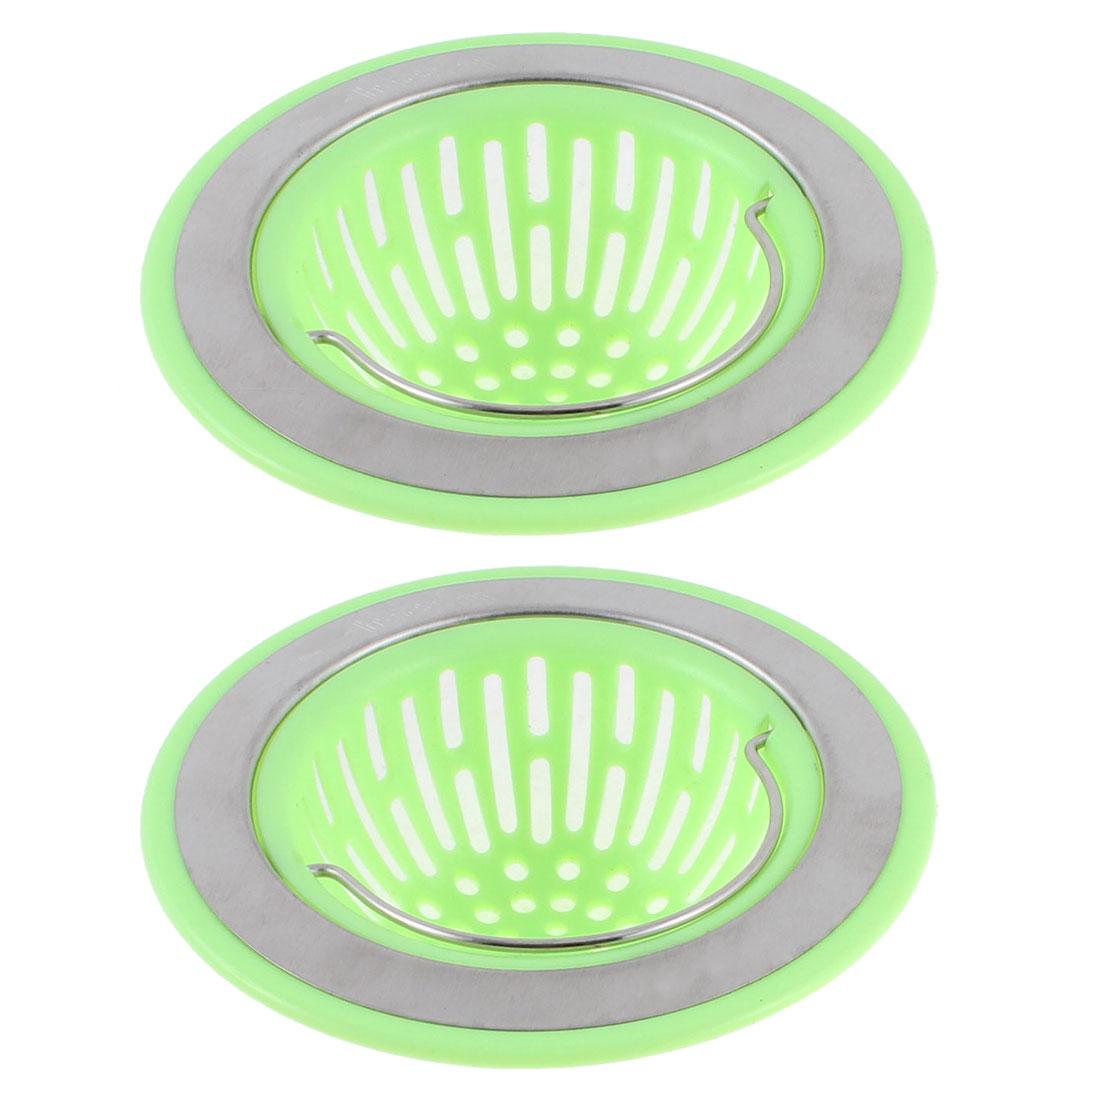 Unique Bargains Plastic Mesh Sink Strainer Waste Disposal Drain Filter Hair Catcher Stopper 2pcs for Home Essential